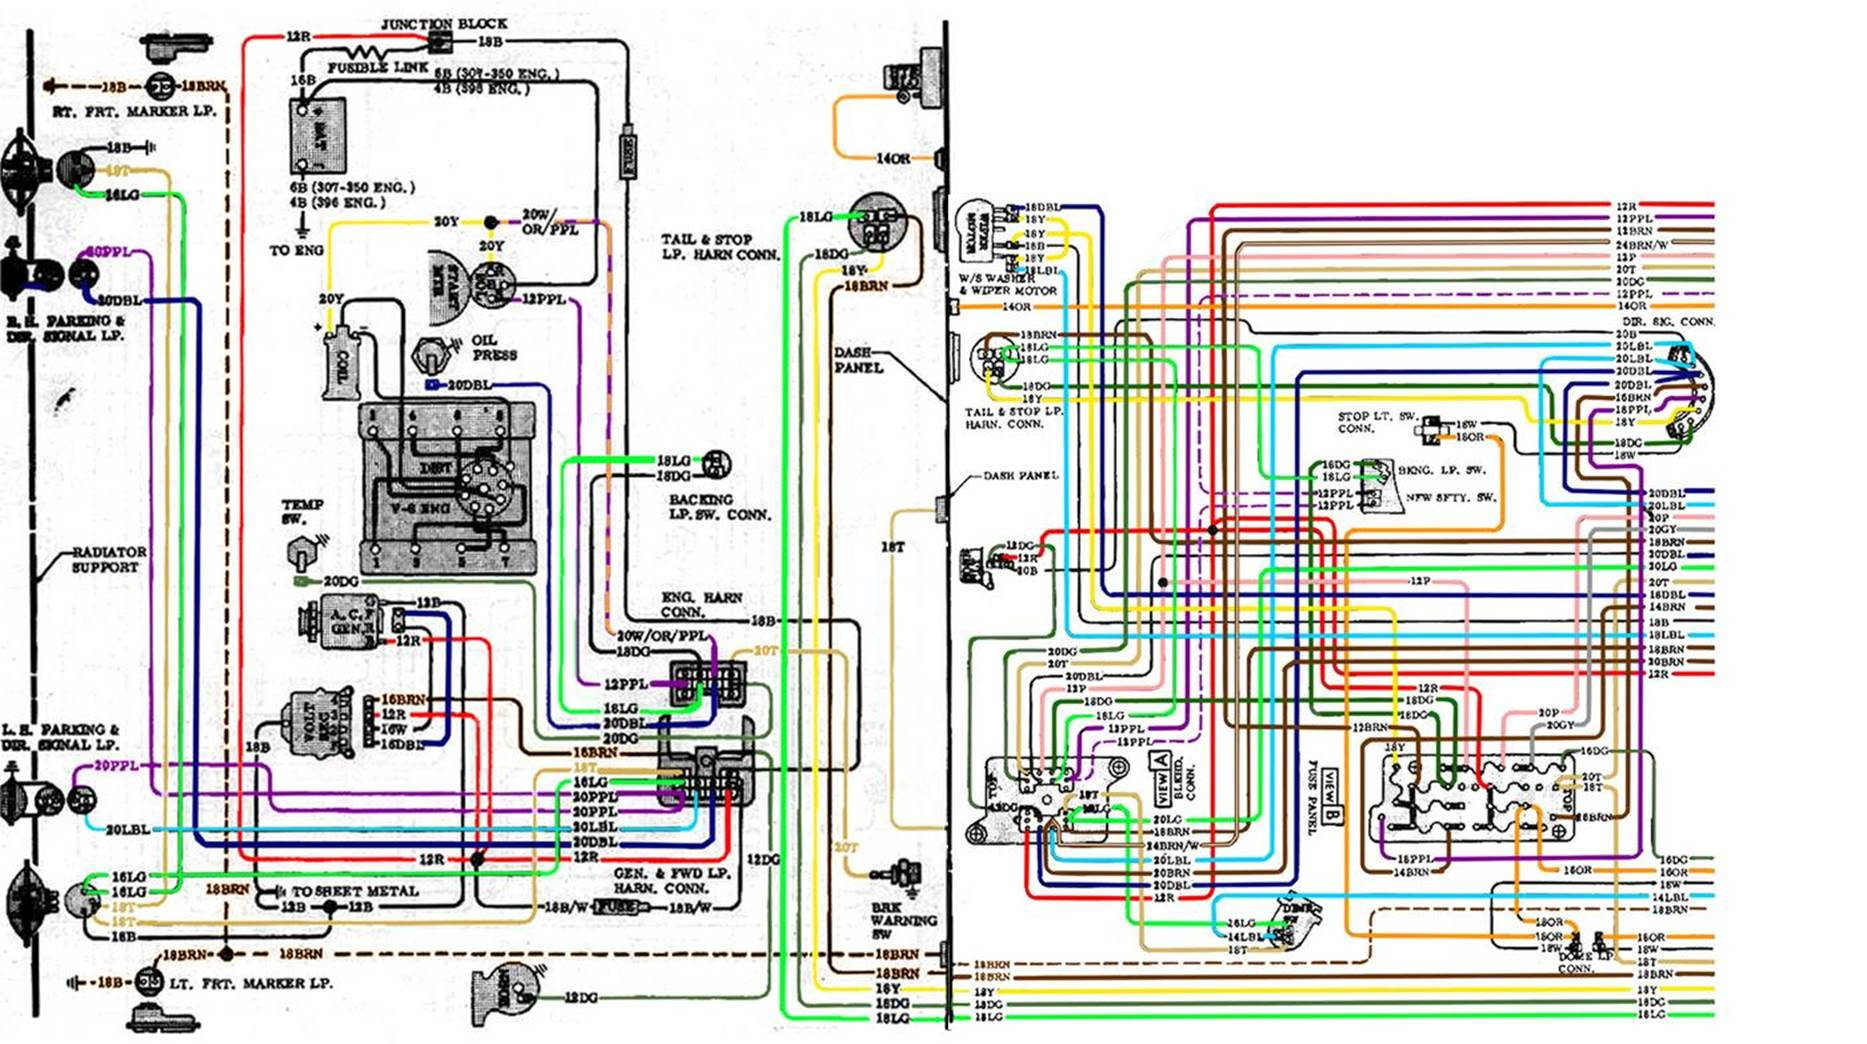 image002 67 72 chevy wiring diagram chevelle wiring schematics at nearapp.co